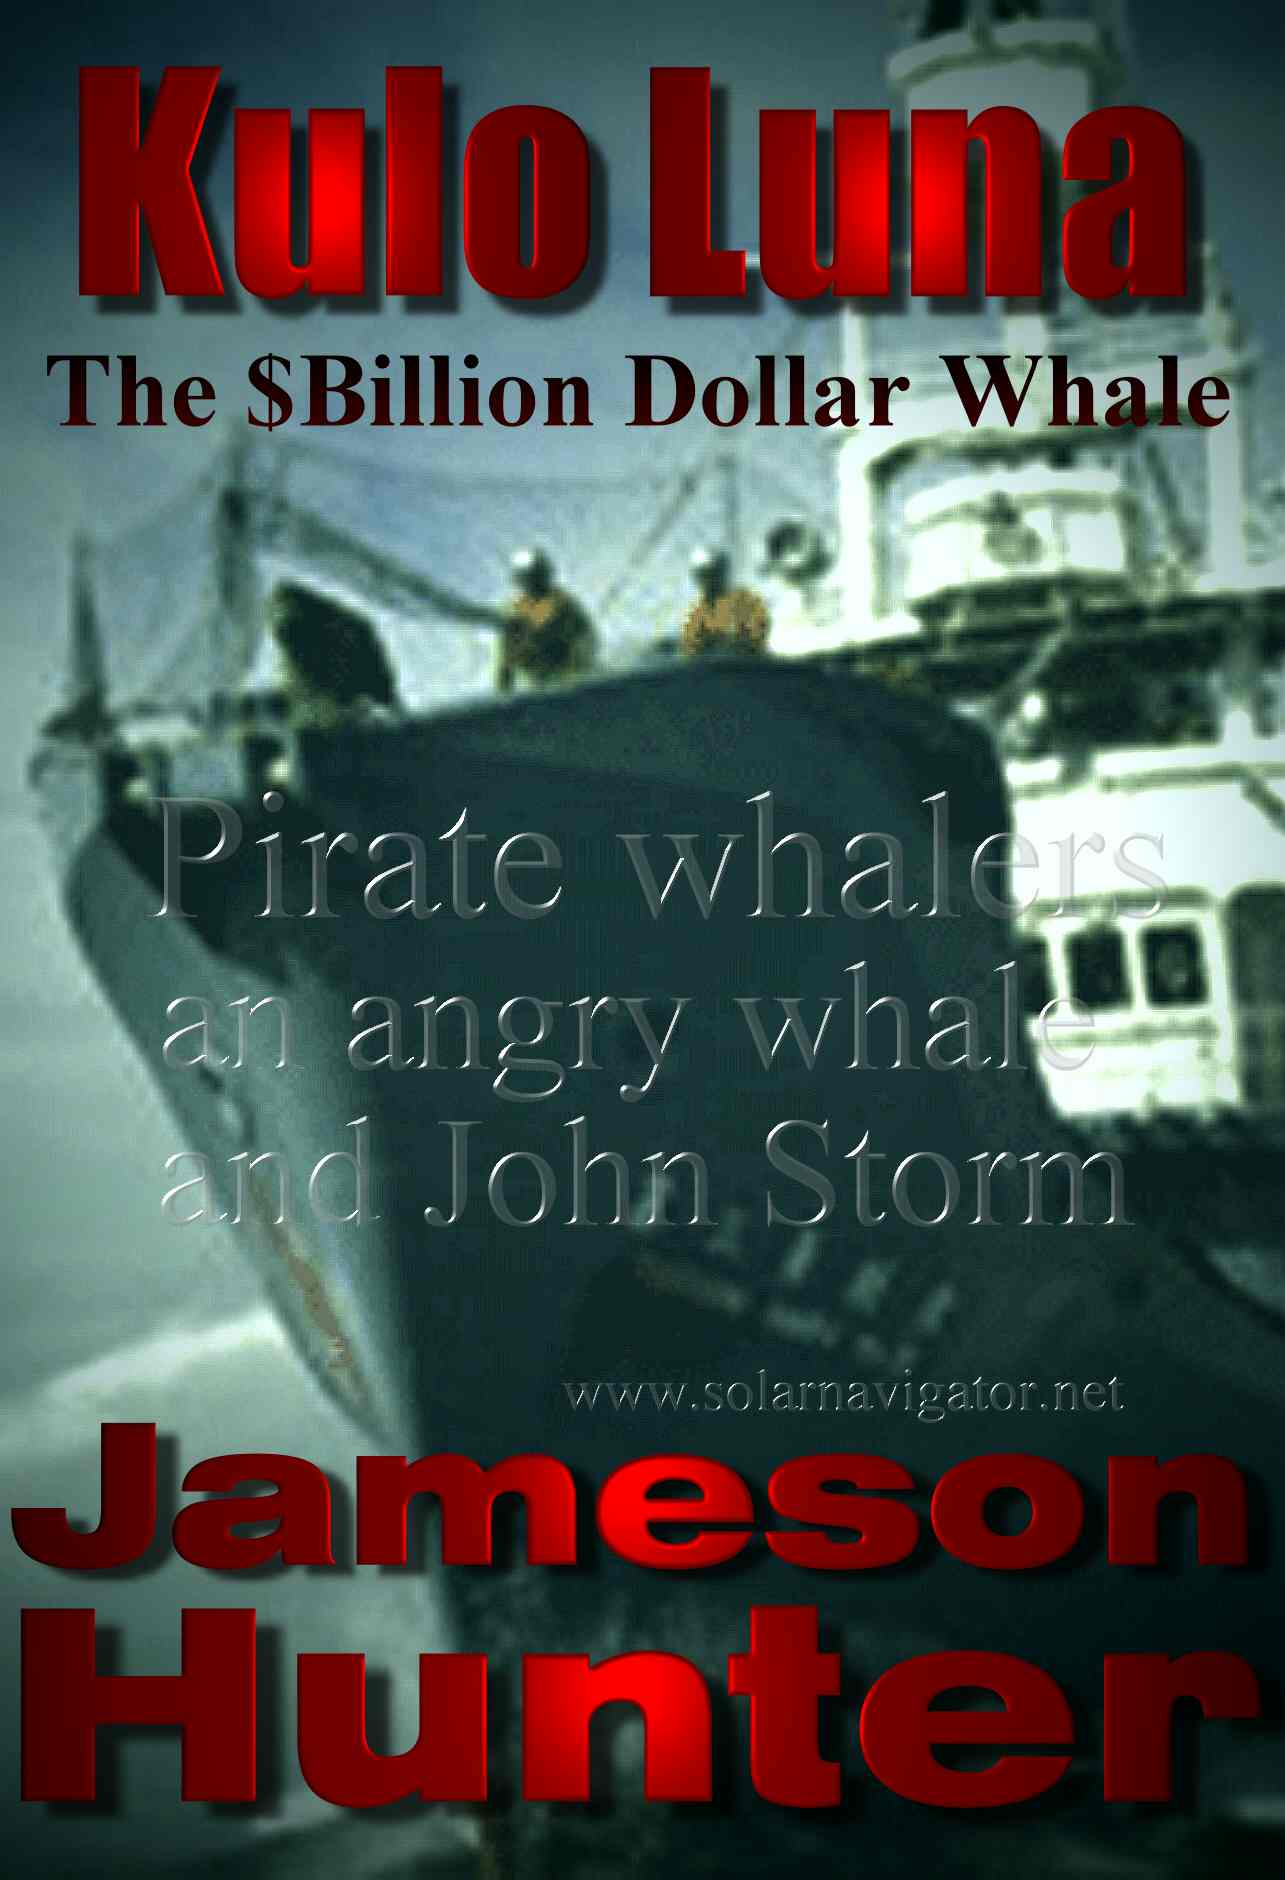 The $Billion Dollar Whale, ocean adventure with John Storm and the Solar Navigator, by Jameson Hunter